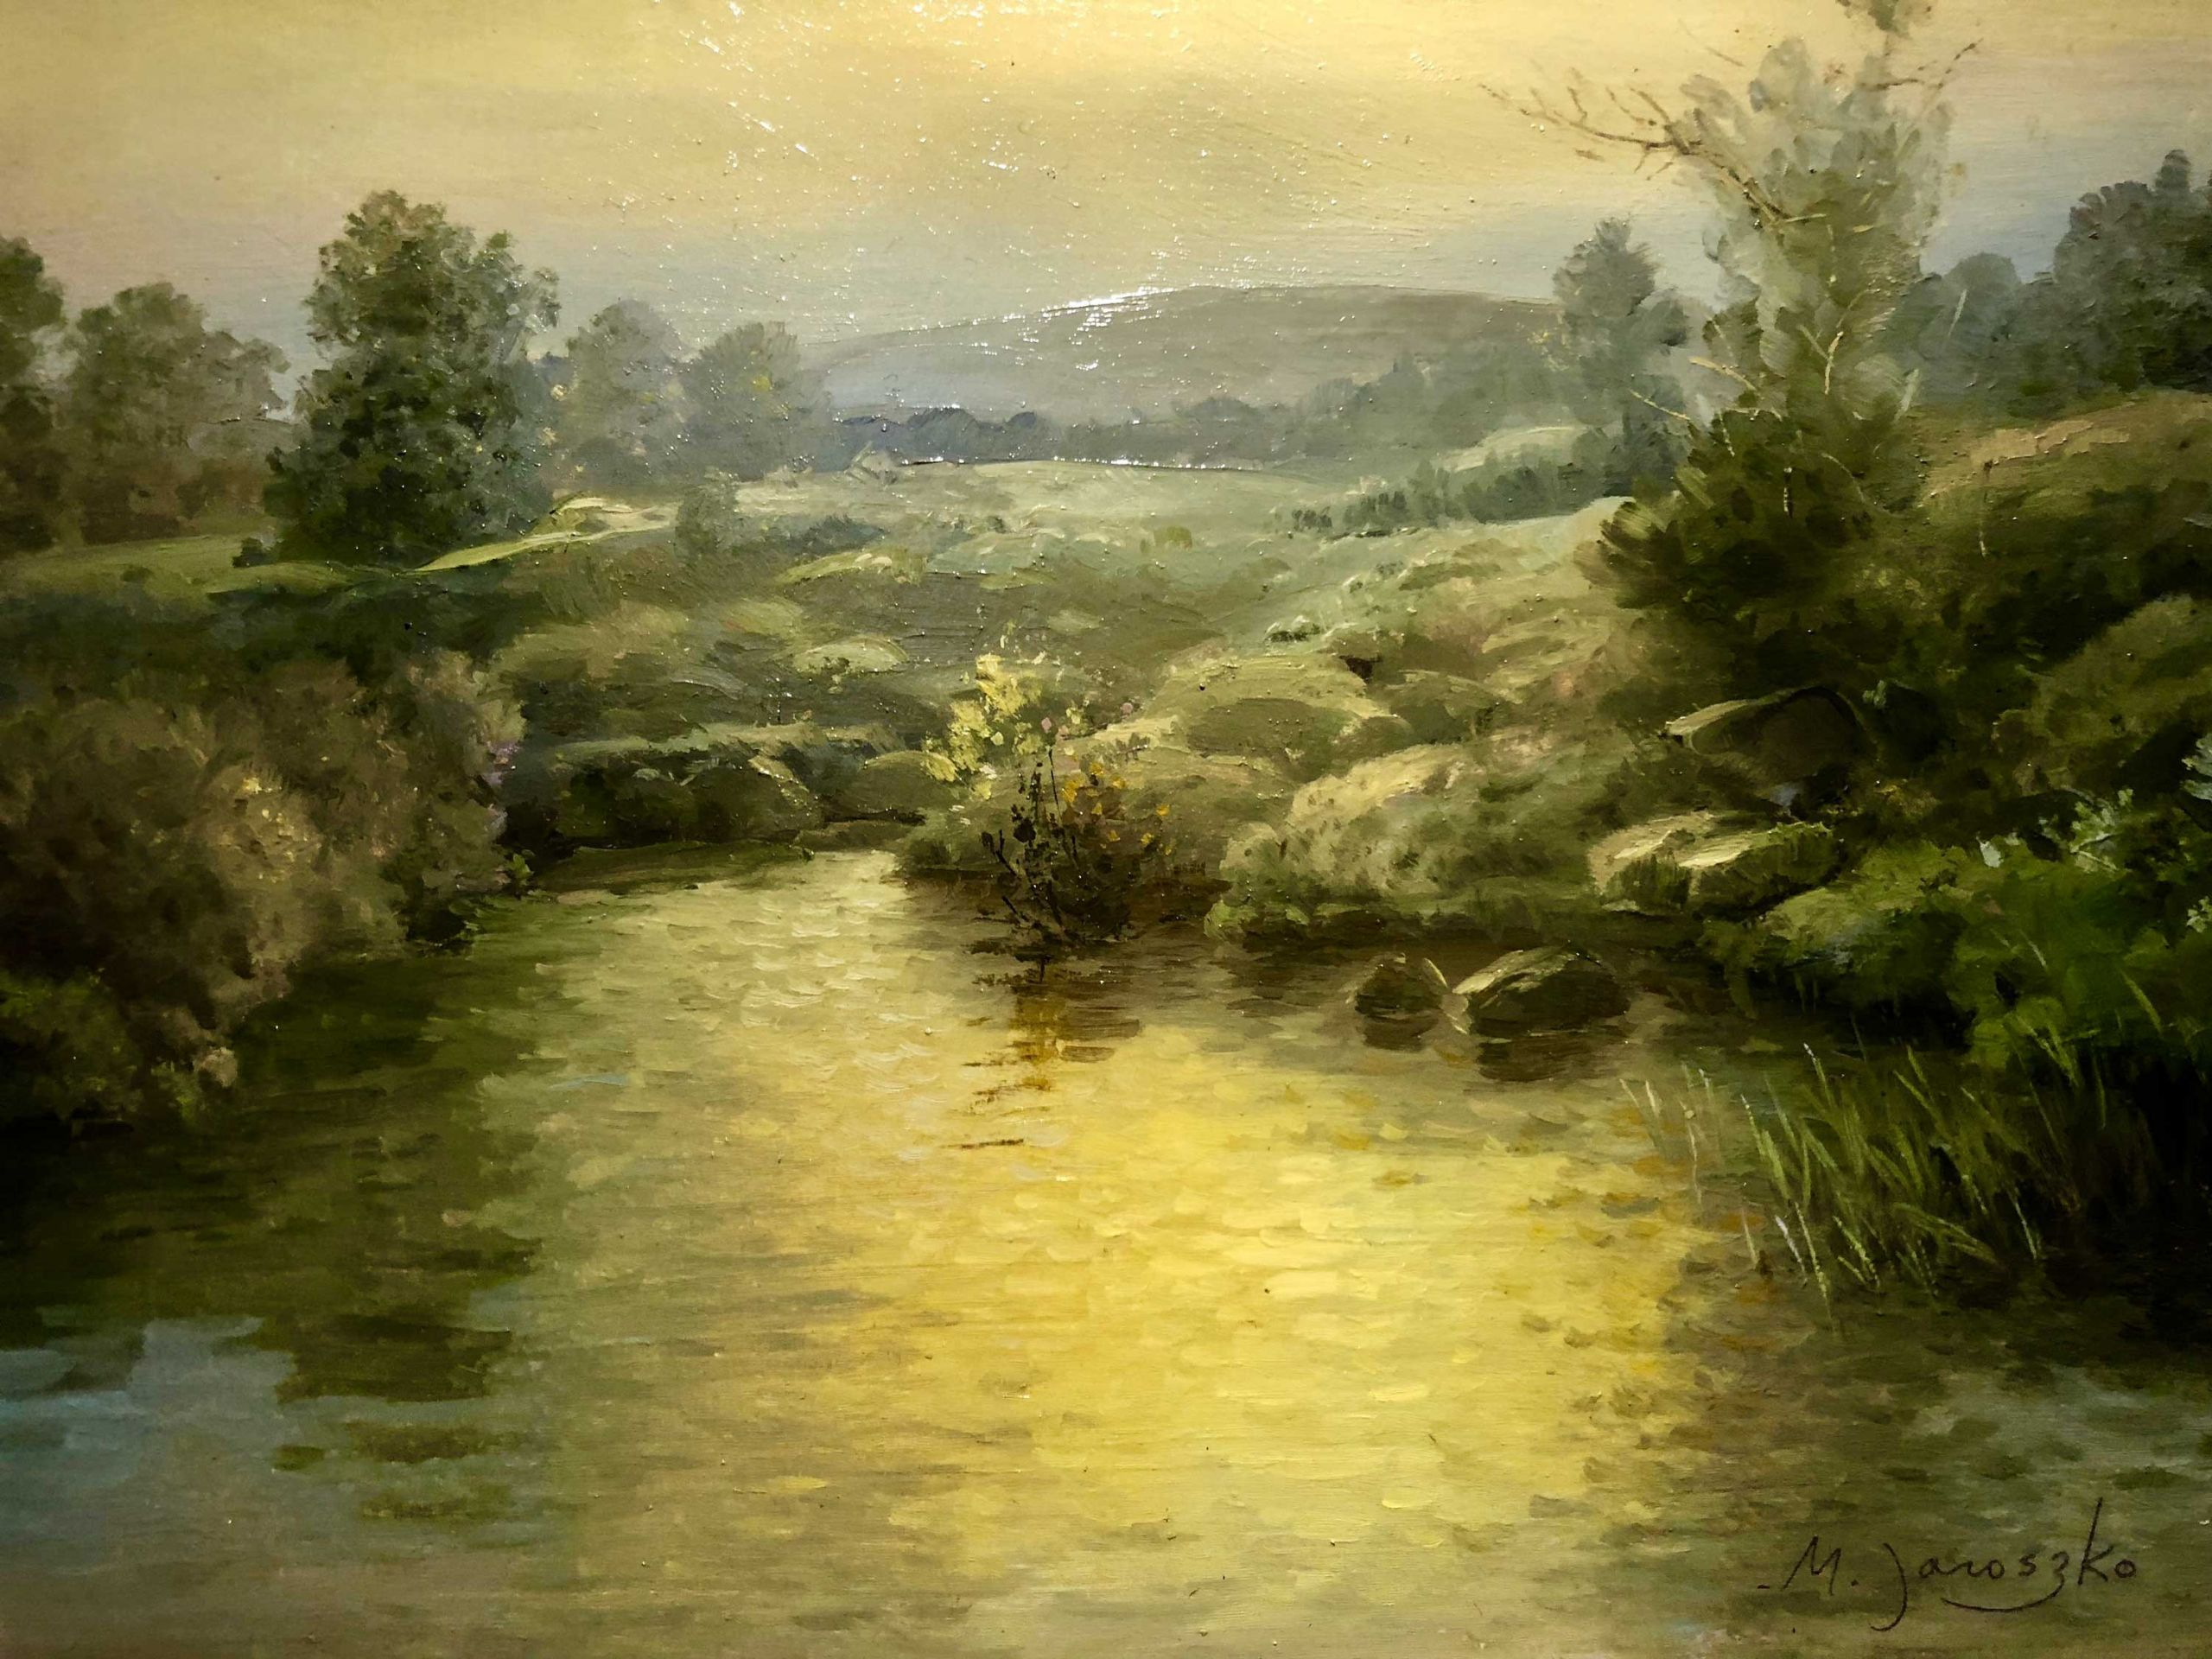 Landscape Painting Images  Classical Landscape Paintings on Display OutdoorPainter